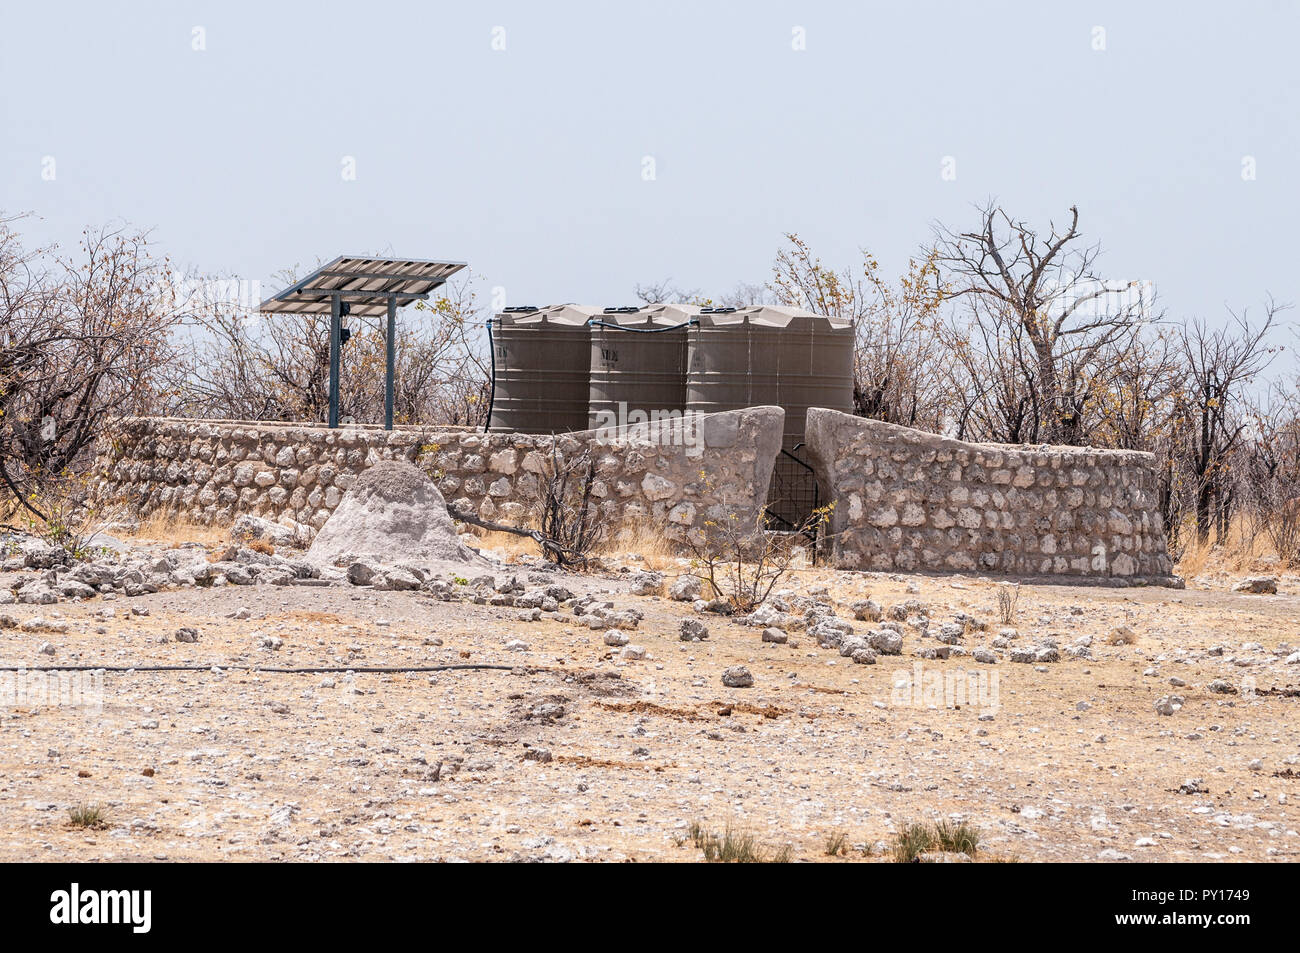 water tanks powered by solar panels for the man made waterholes, Etosha National Park, Namibia - Stock Image